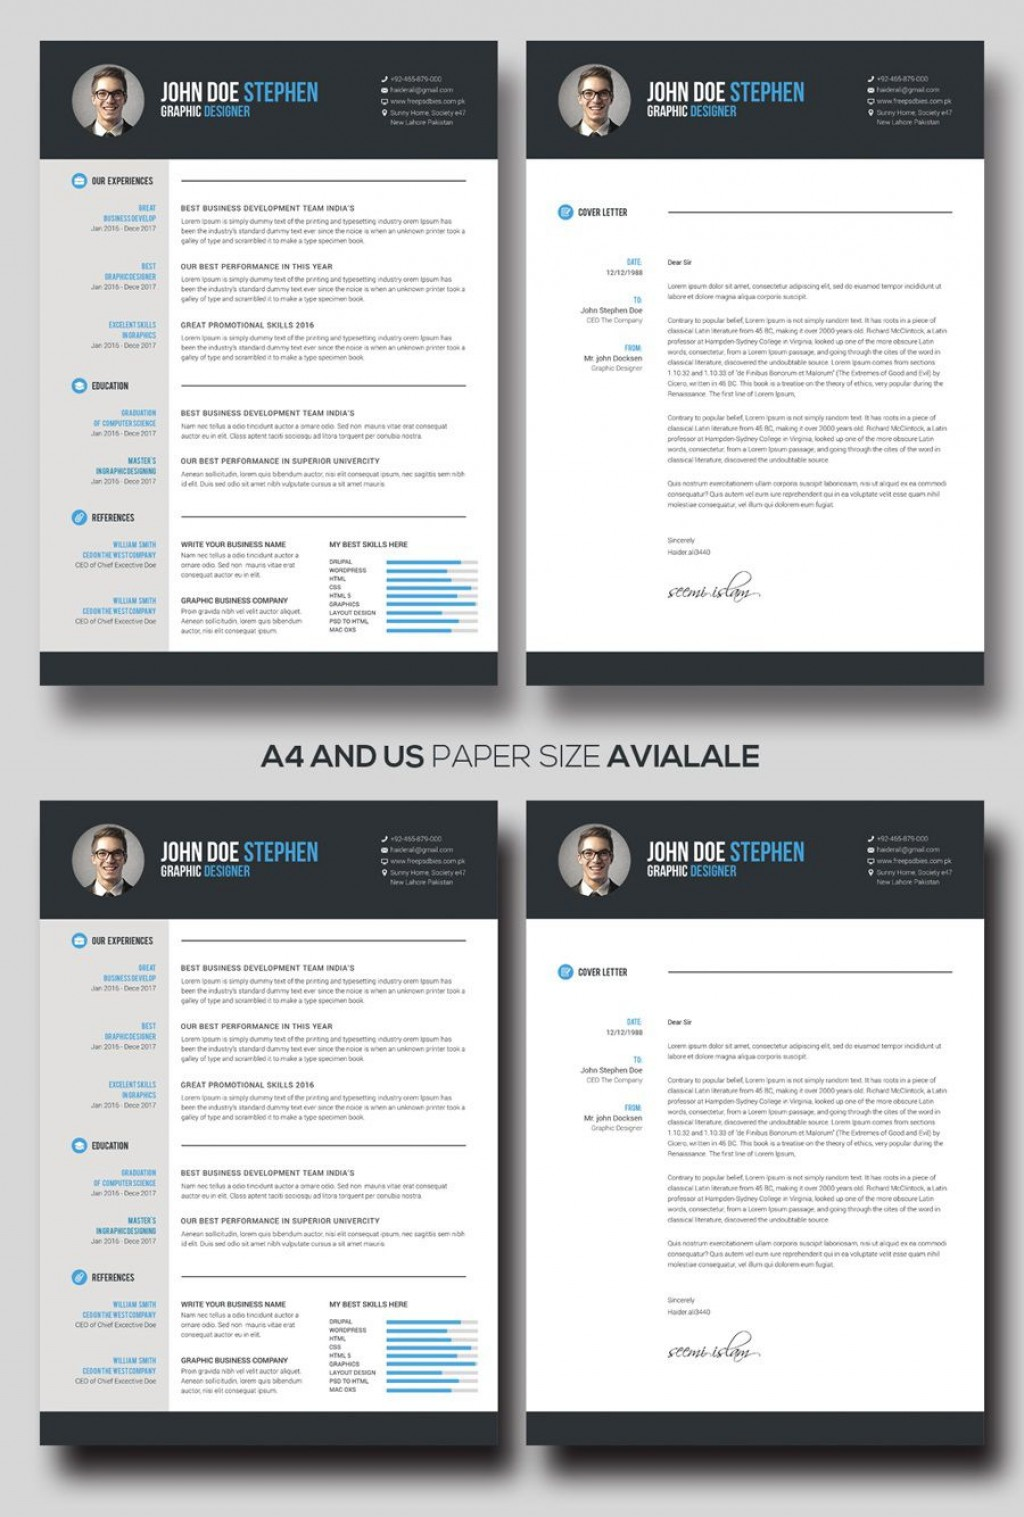 005 Exceptional M Word Template Free Download Picture  Microsoft Office Invoice Letterhead 2003 ResumeLarge